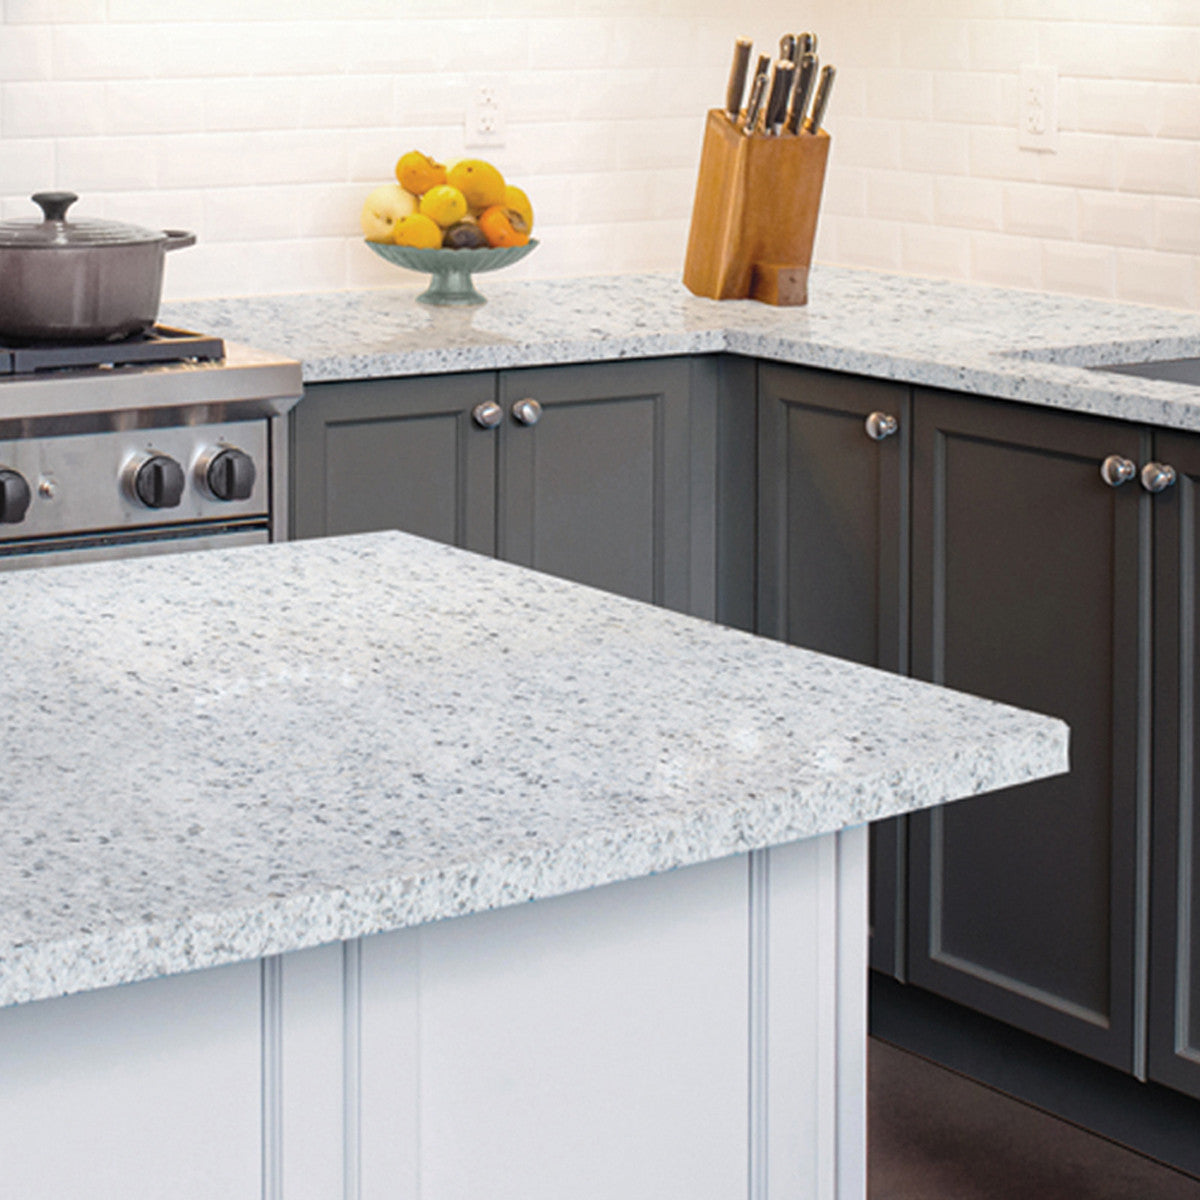 Giani White Diamond Countertop Paint Kit Giani Inc